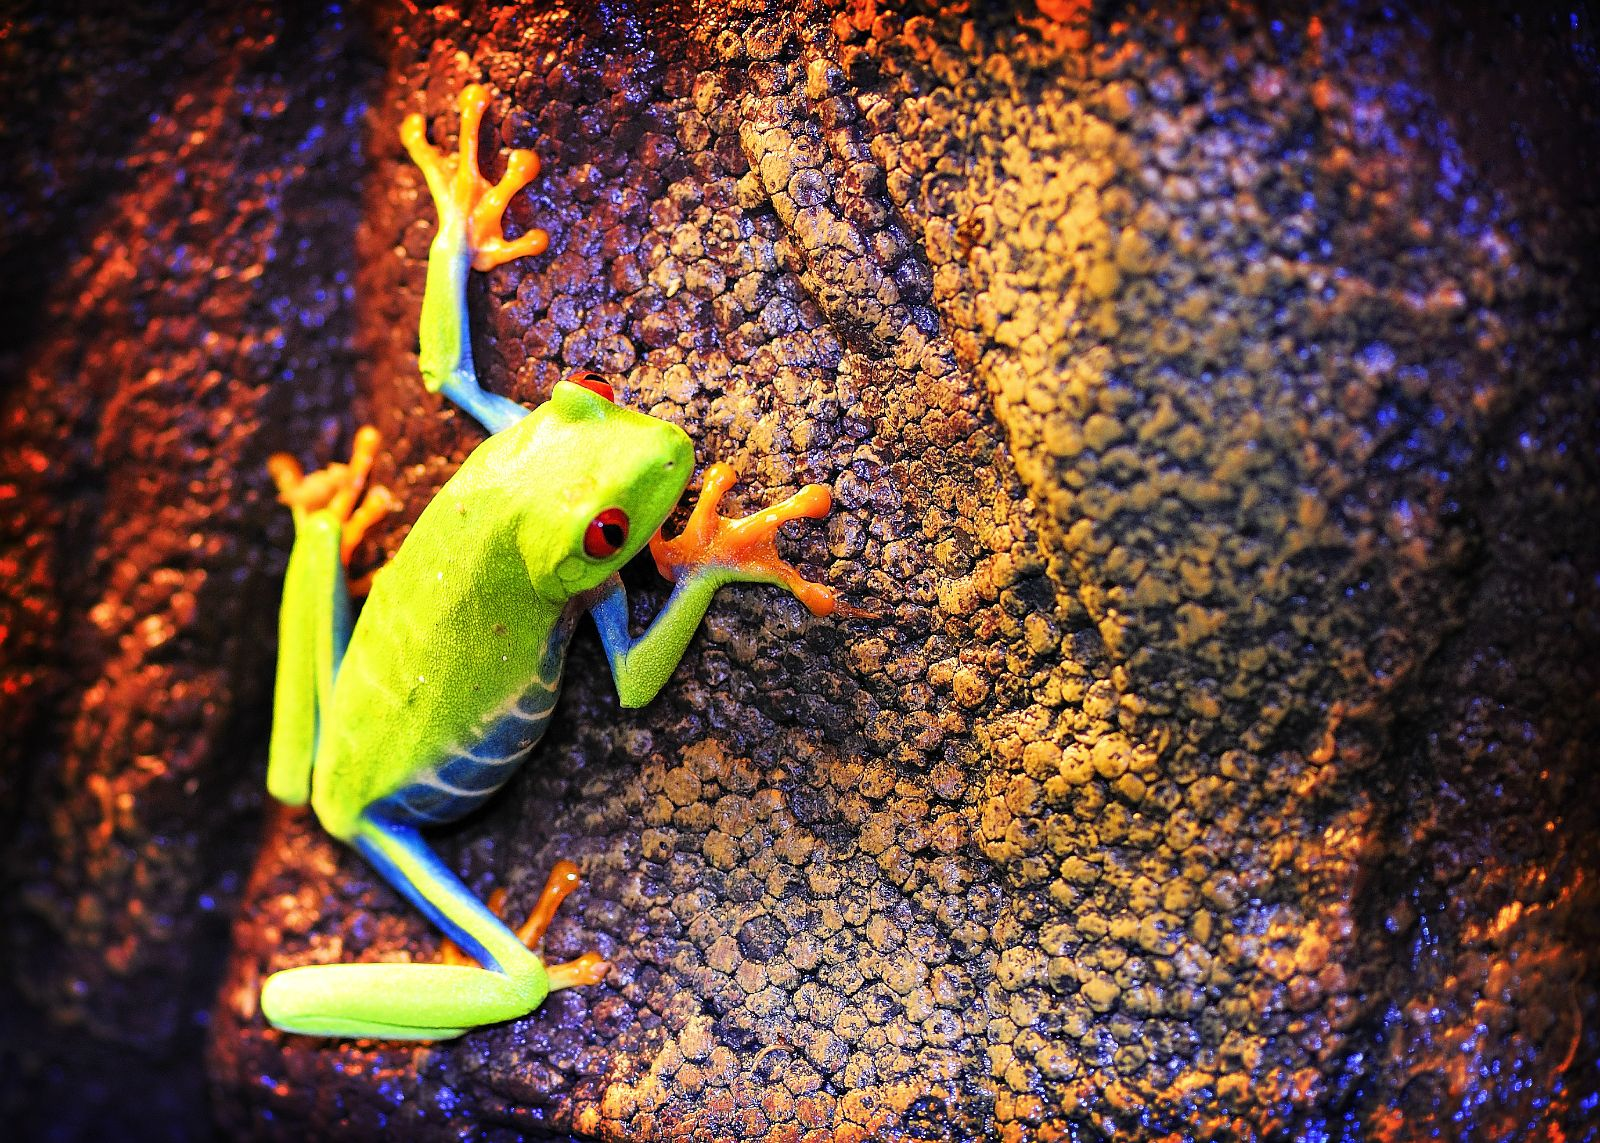 Red-eyed tree frog at Northampton Reptile Centre - I love their page!